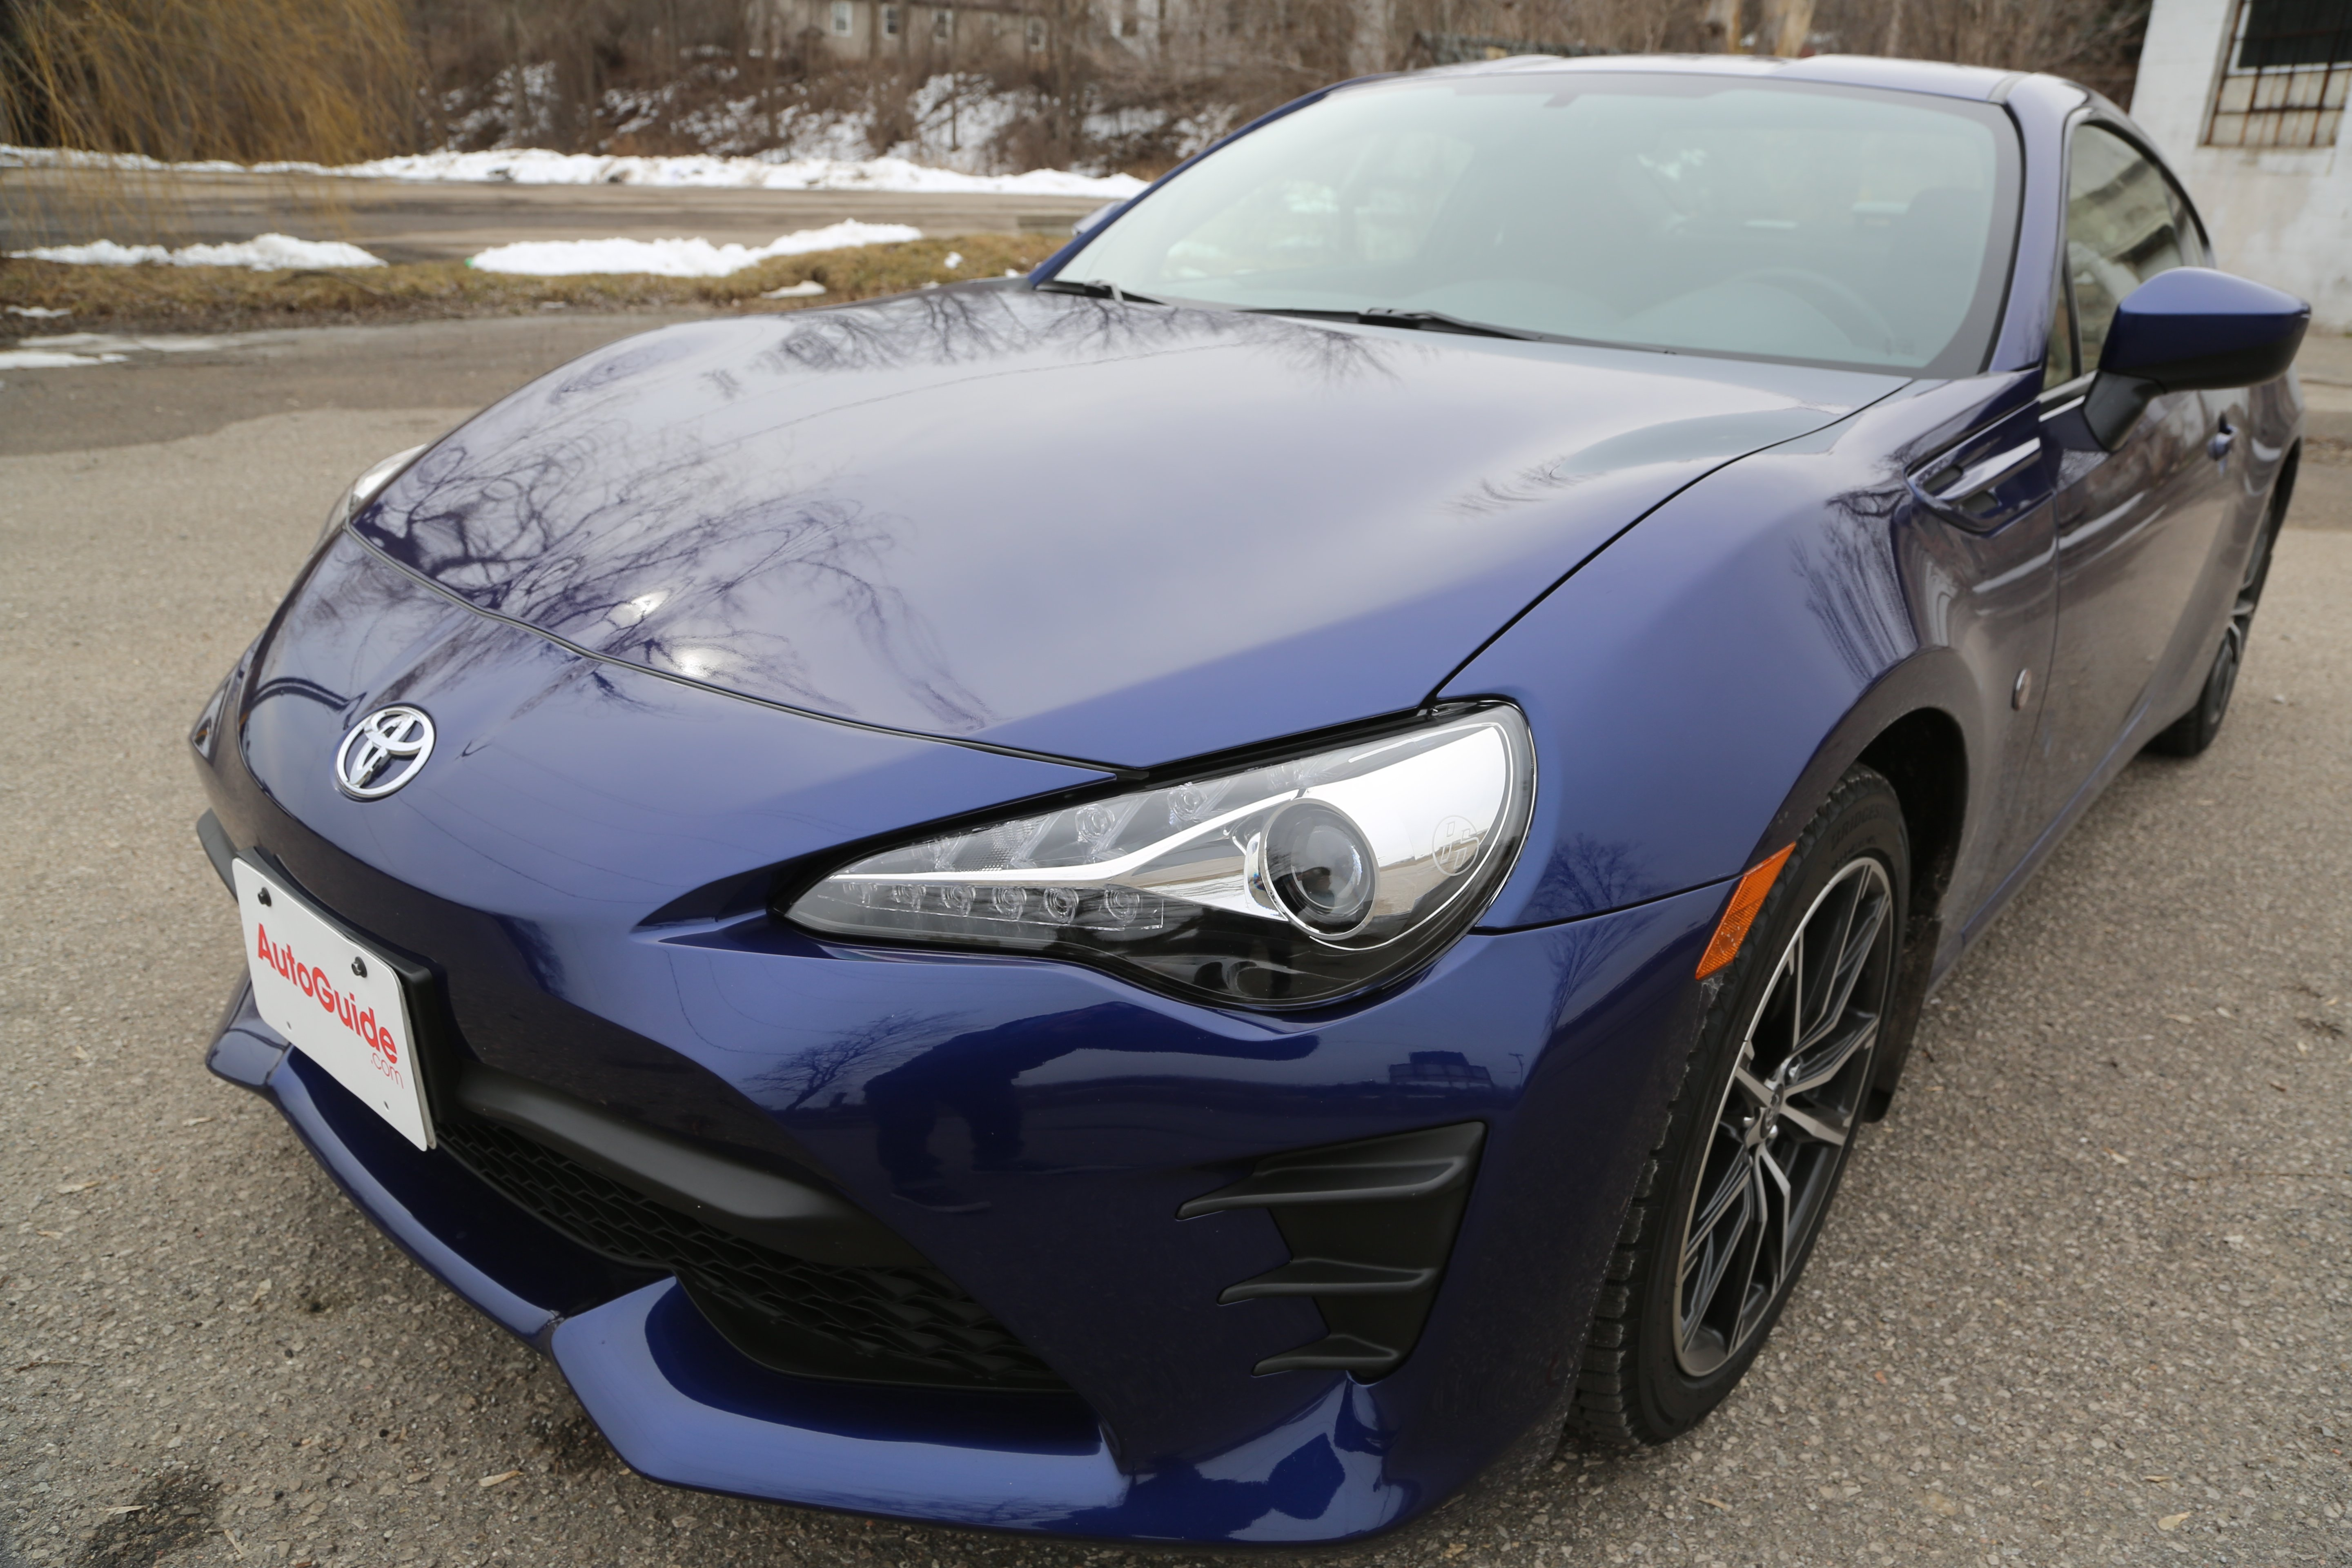 2017 Toyota 86 Review 5 Things It Missed For Perfection